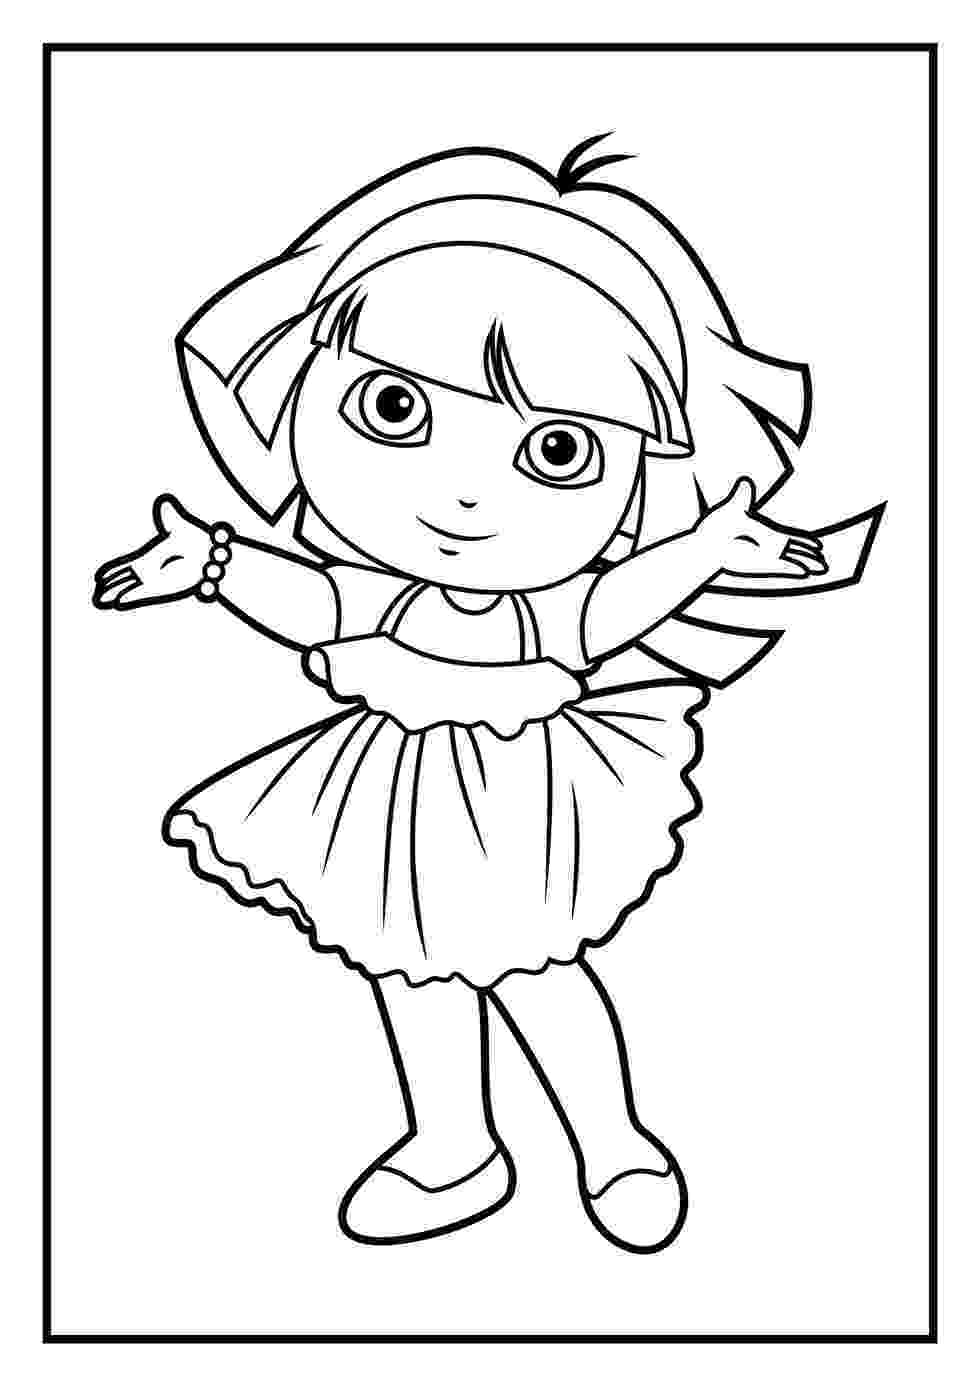 colouring pages dora dora and boots coloring pages to download and print for free pages colouring dora